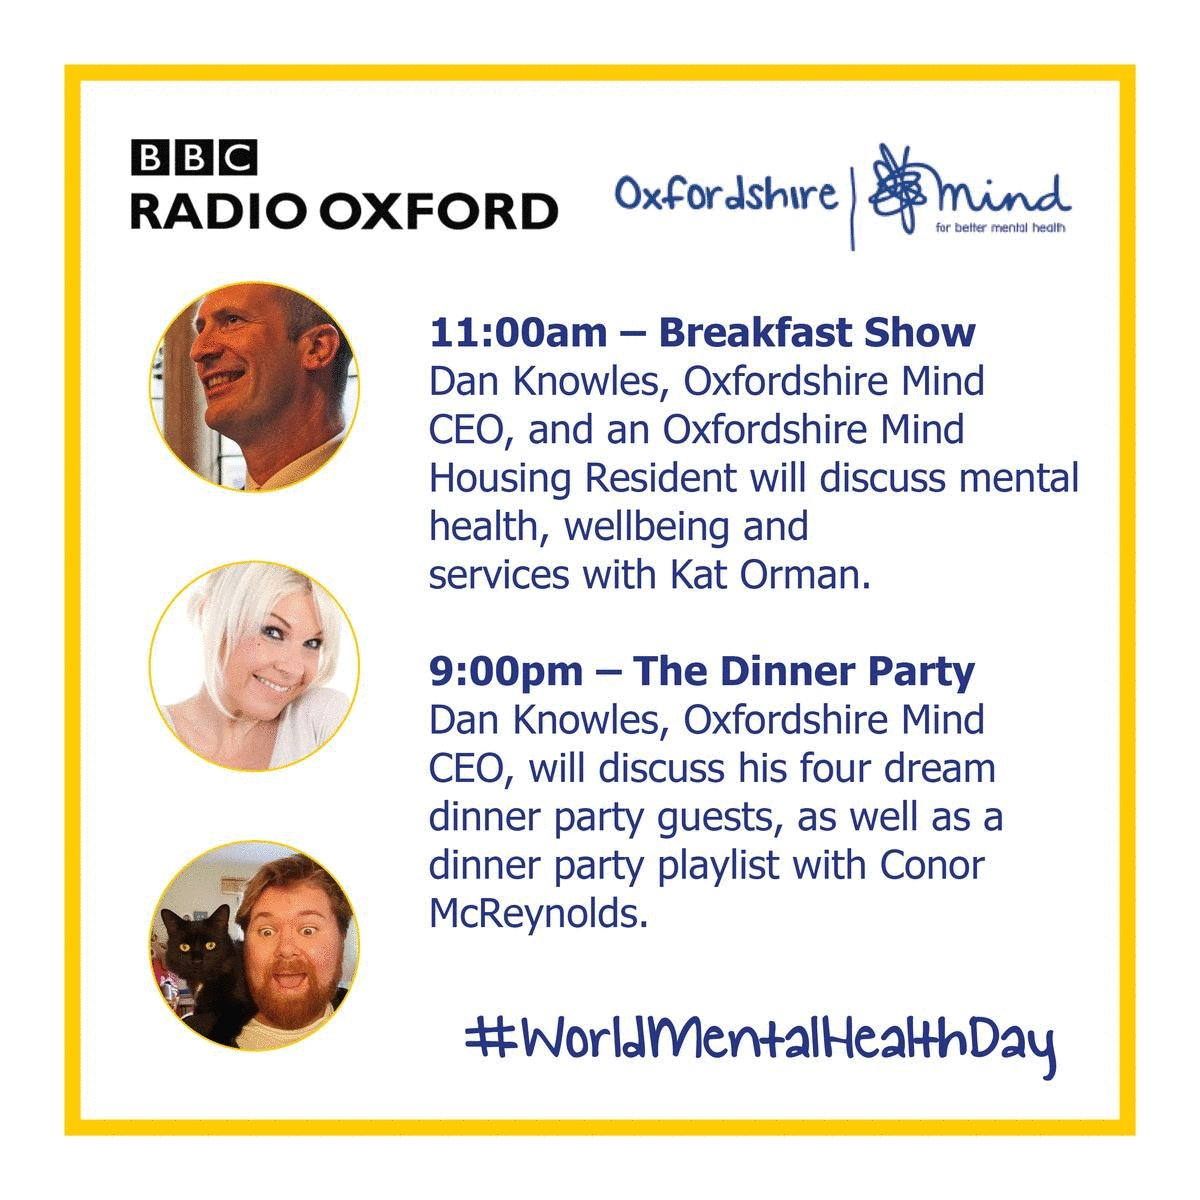 RT @OxfordshireMind: #WorldMentalHealthDay is tomorrow are we are proud to be hosting a variety of events throughout the day.  Information on all of tomorrow's activities 👉  @KatOrman @bbcoxford @justconor87